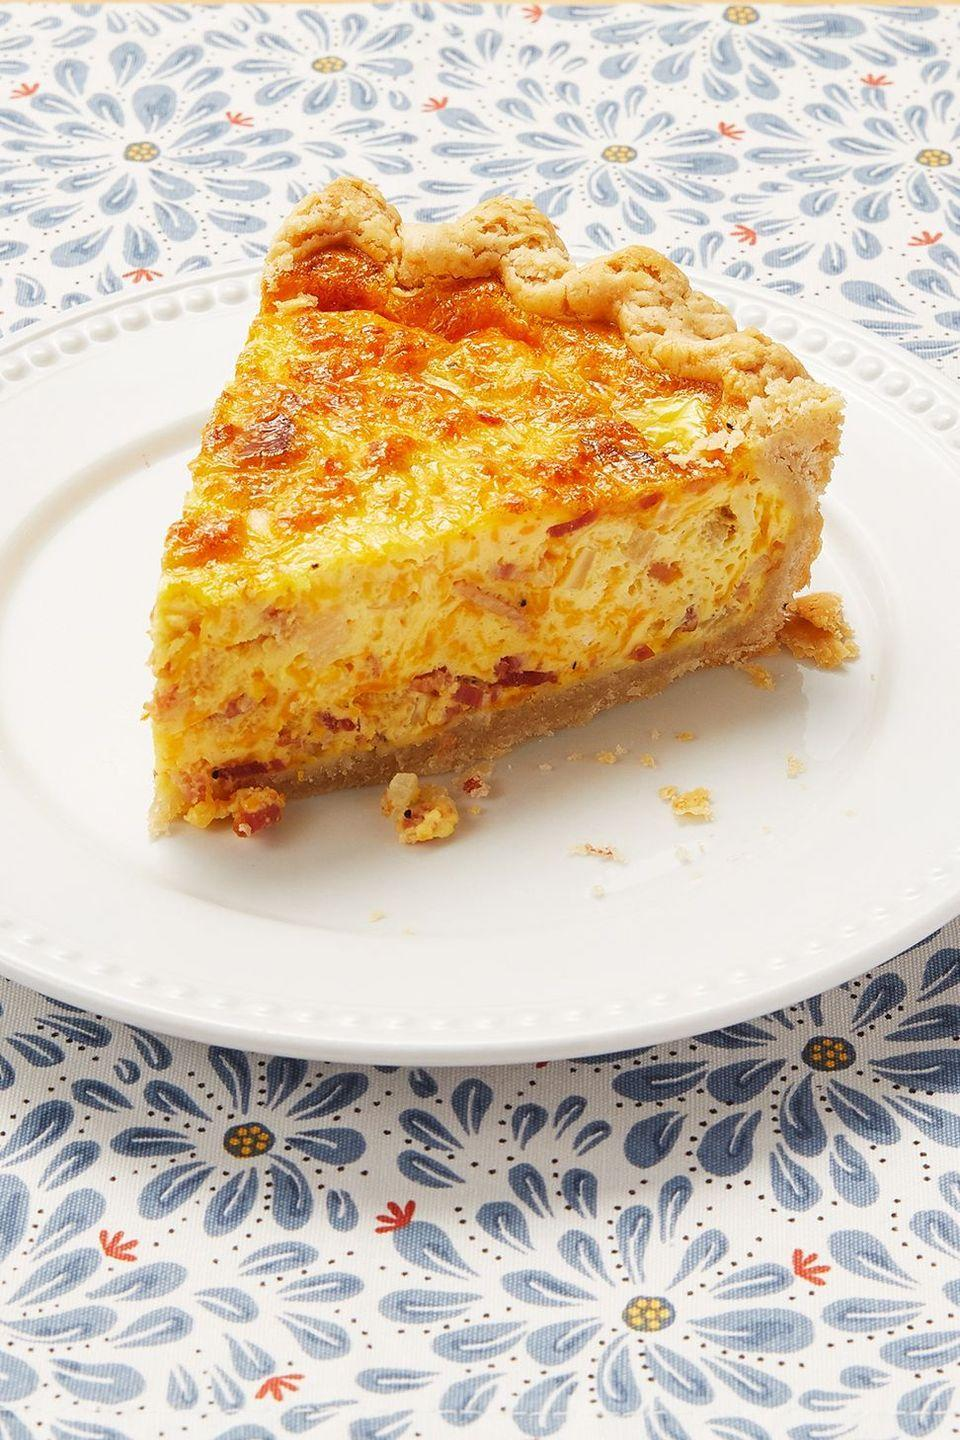 """<p>This hearty quiche is made with bacon, caramelized onions, and cheddar cheese. It's ideal for an Easter lunch!</p><p><a href=""""https://www.thepioneerwoman.com/food-cooking/recipes/a11074/cowboy-quiche/"""" rel=""""nofollow noopener"""" target=""""_blank"""" data-ylk=""""slk:Get the recipe."""" class=""""link rapid-noclick-resp""""><strong>Get the recipe.</strong></a></p><p><a class=""""link rapid-noclick-resp"""" href=""""https://go.redirectingat.com?id=74968X1596630&url=https%3A%2F%2Fwww.walmart.com%2Fsearch%2F%3Fquery%3Ddeep%2Bdish%2Bpie%2Bplate&sref=https%3A%2F%2Fwww.thepioneerwoman.com%2Ffood-cooking%2Fmeals-menus%2Fg35585877%2Feaster-recipes%2F"""" rel=""""nofollow noopener"""" target=""""_blank"""" data-ylk=""""slk:SHOP DEEP DISH PIE PLATES"""">SHOP DEEP DISH PIE PLATES</a></p>"""